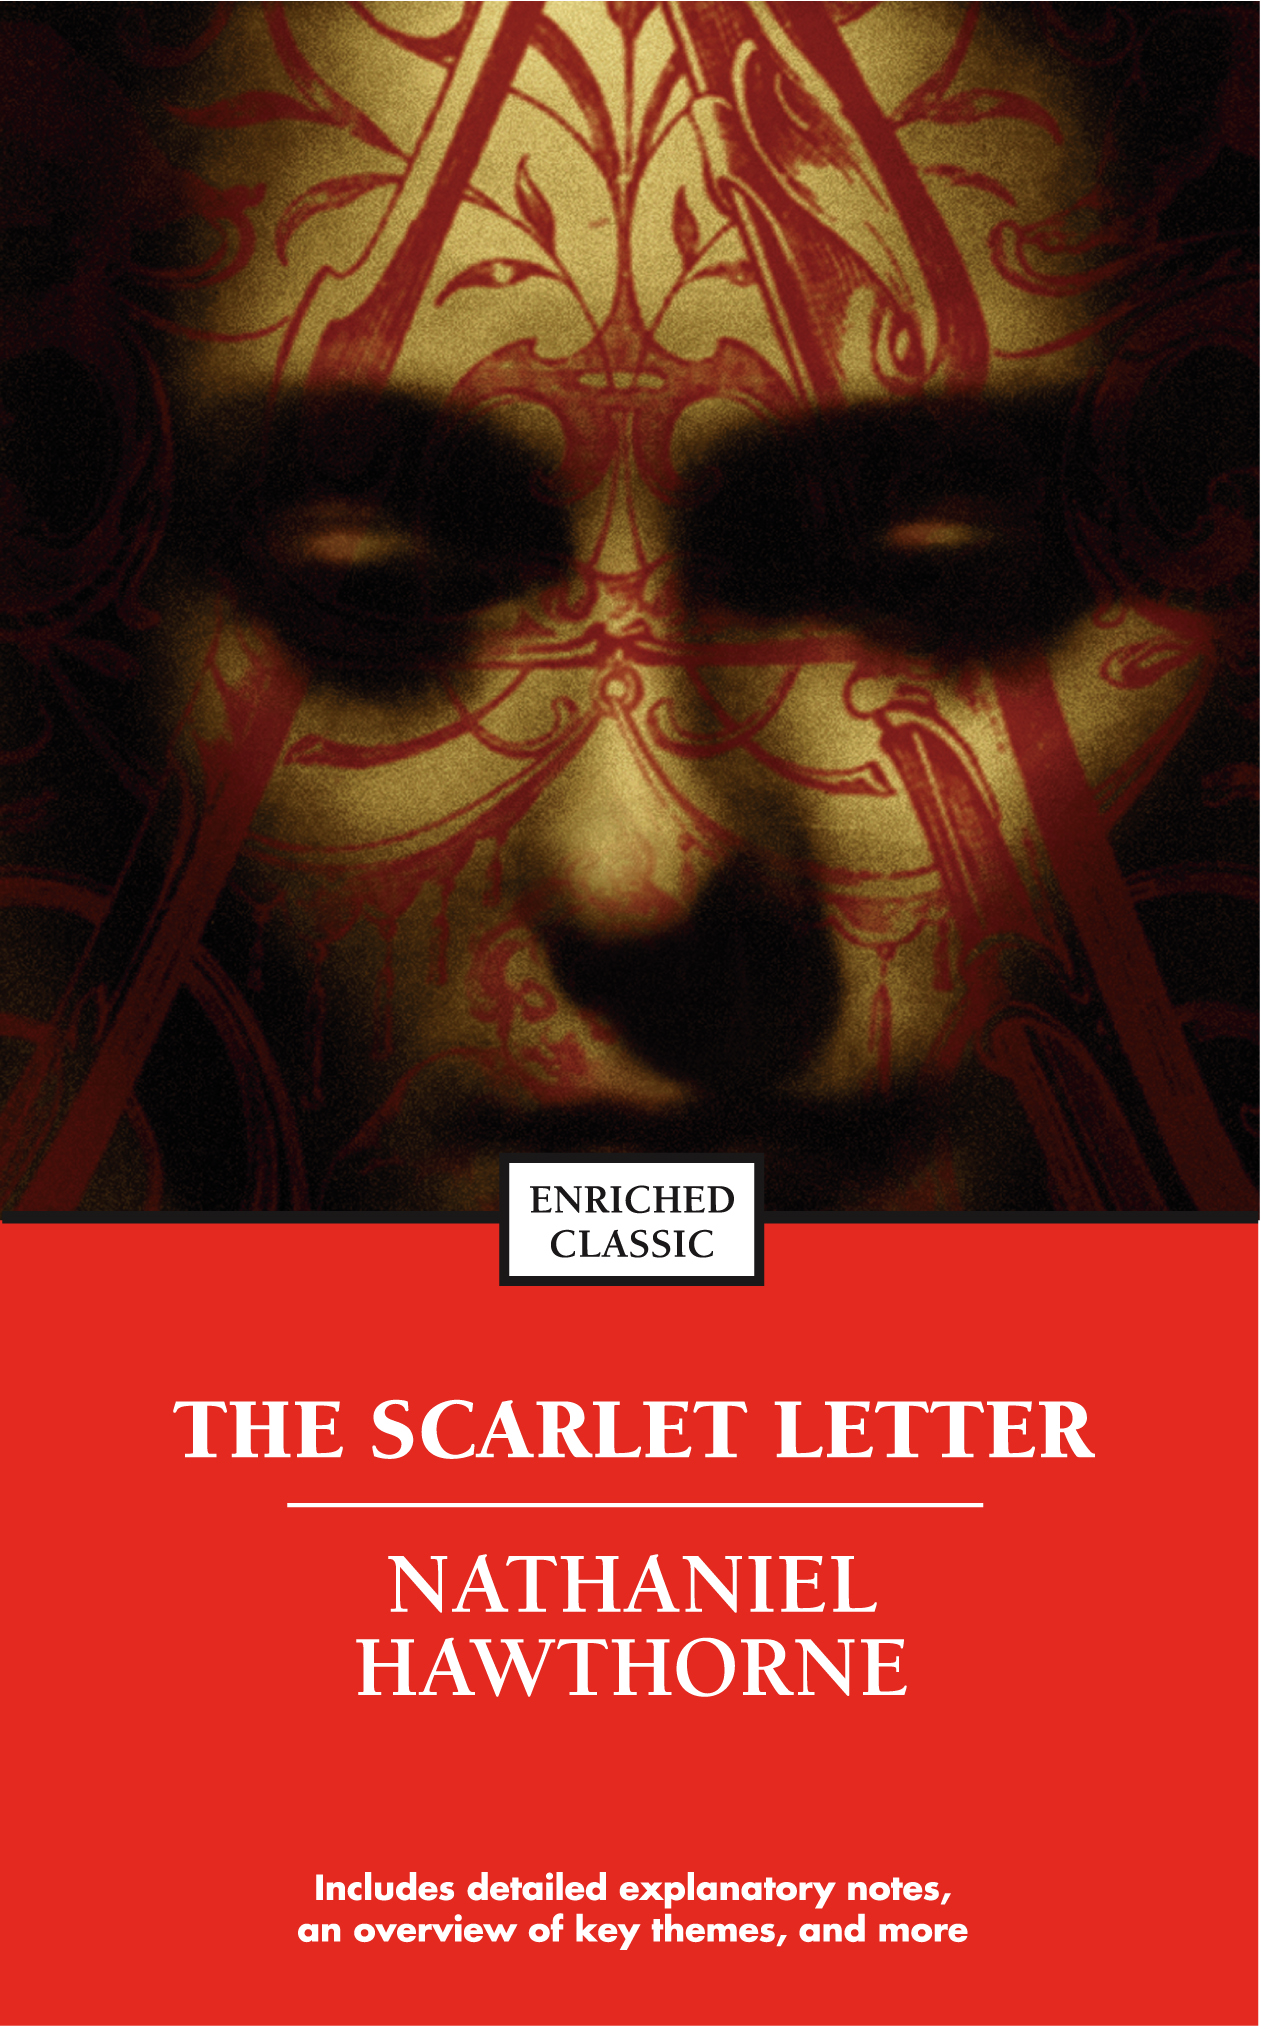 the scarlet letter movie